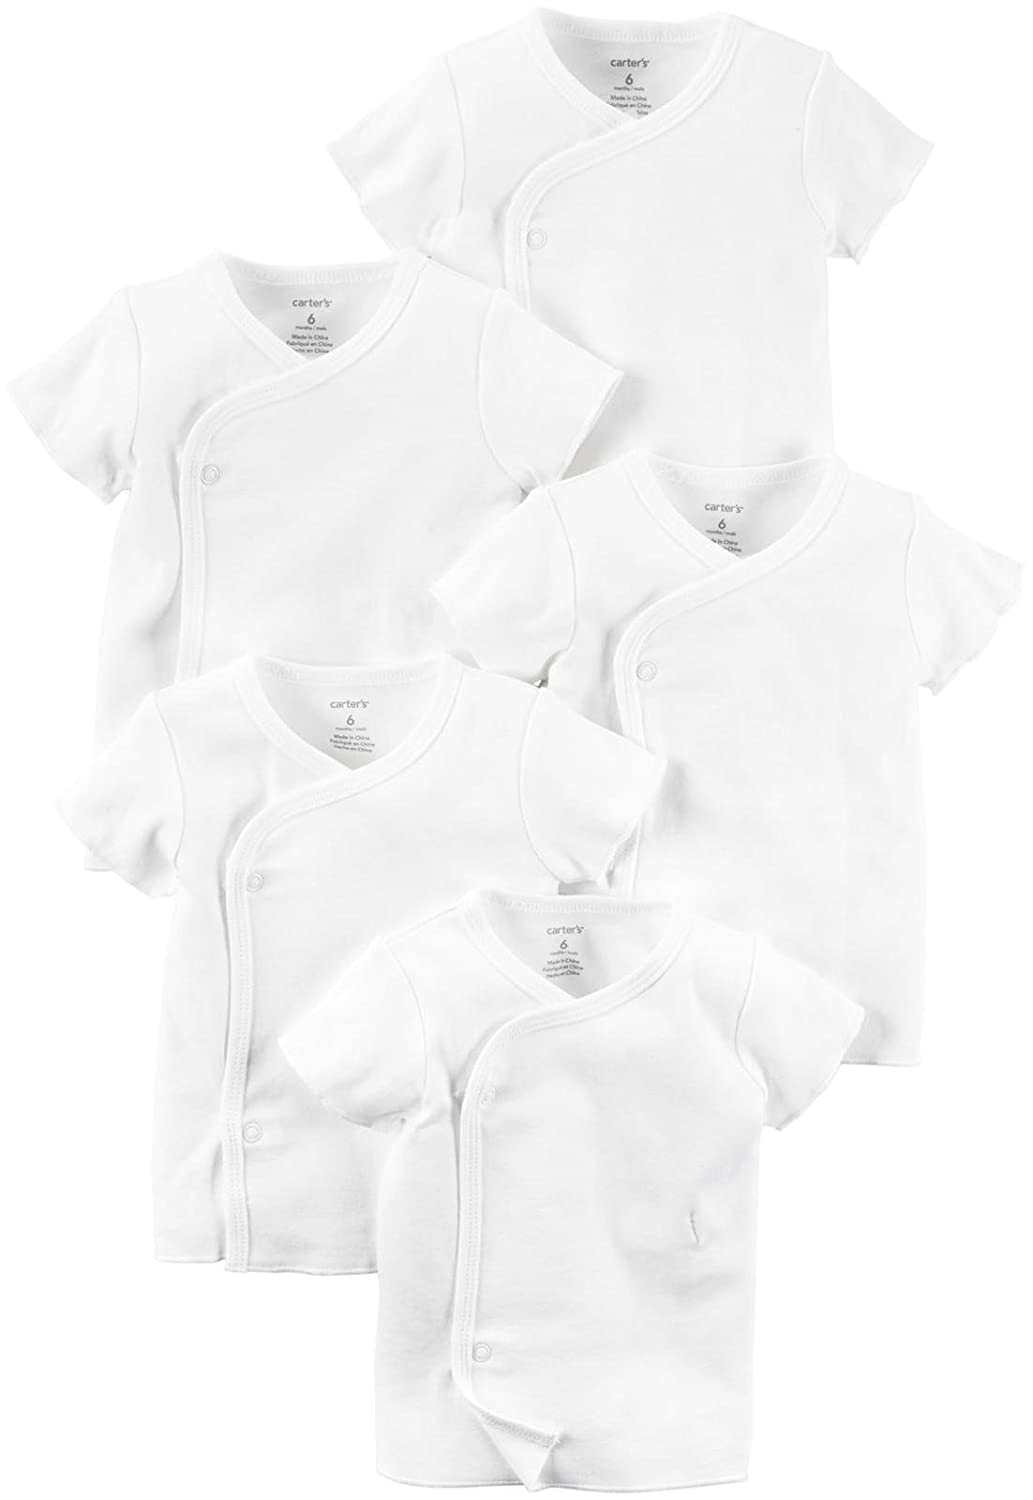 Carter's Unisex Baby 5-Pack Side-Snap T-Shirts Carter's